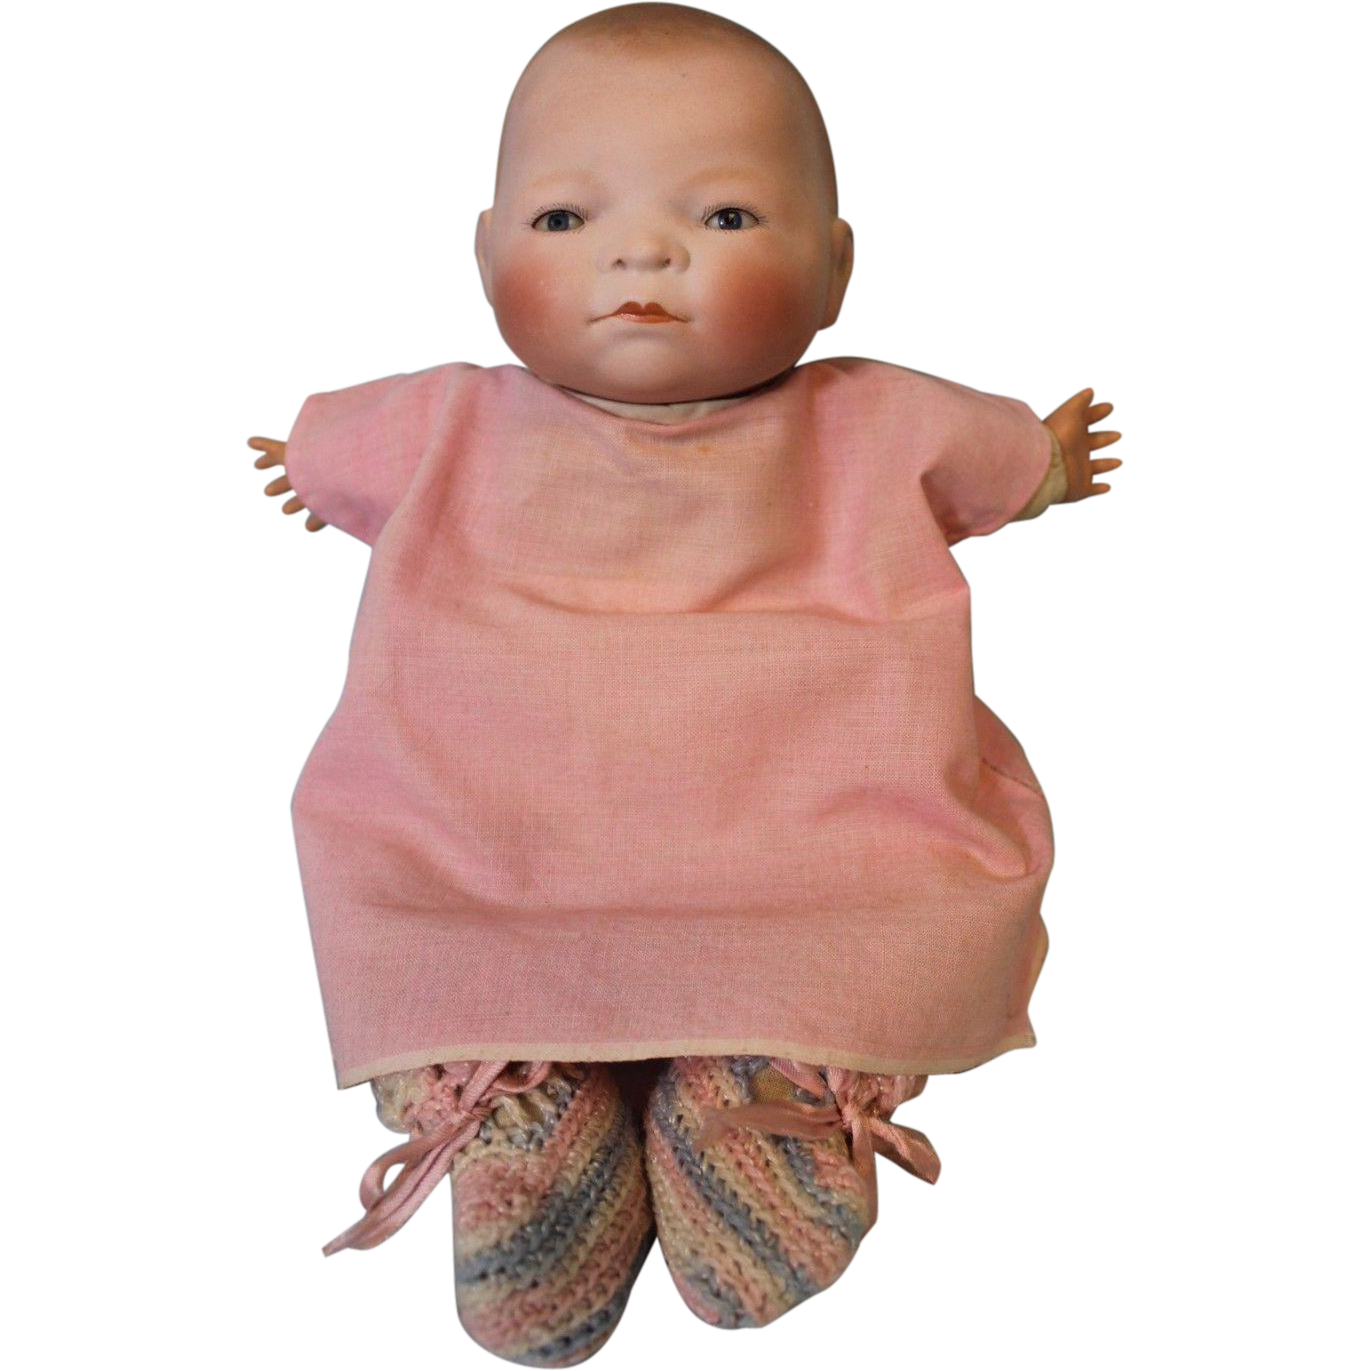 11 Inch Antique Bye Lo Baby Doll By Grace S Putnam German Bisque Baby Dolls Old Dolls Antique Dolls